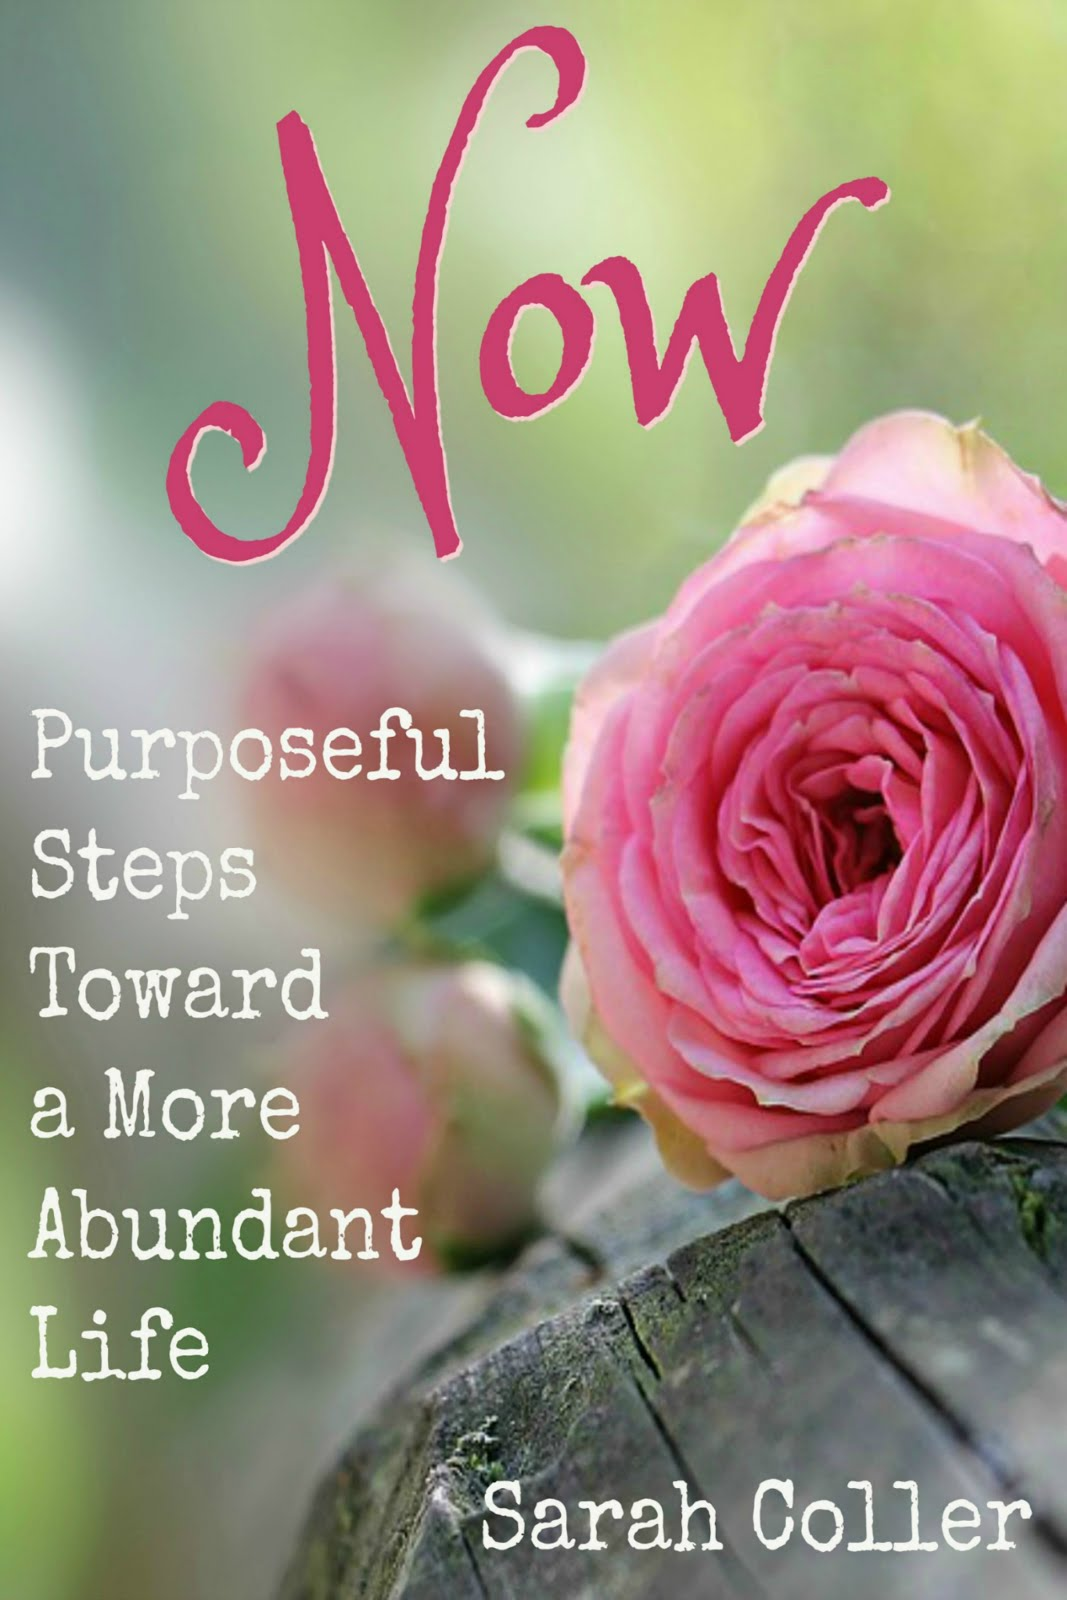 Check out my new book for women. It's great for making New Year resolutions!